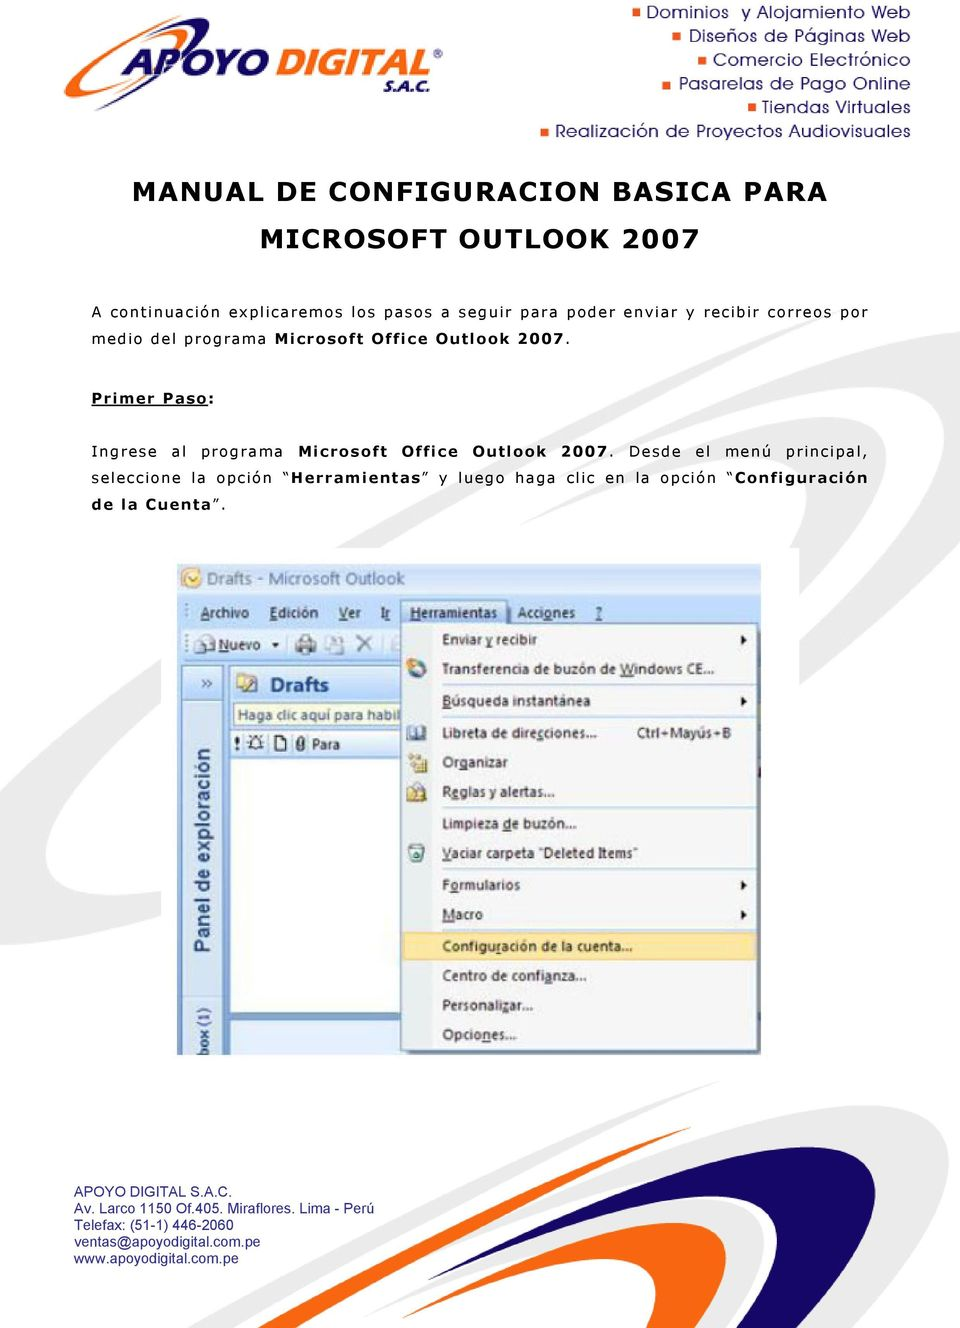 Outlook 2007. Primer Paso: Ingrese al programa Microsoft Office Outlook 2007.